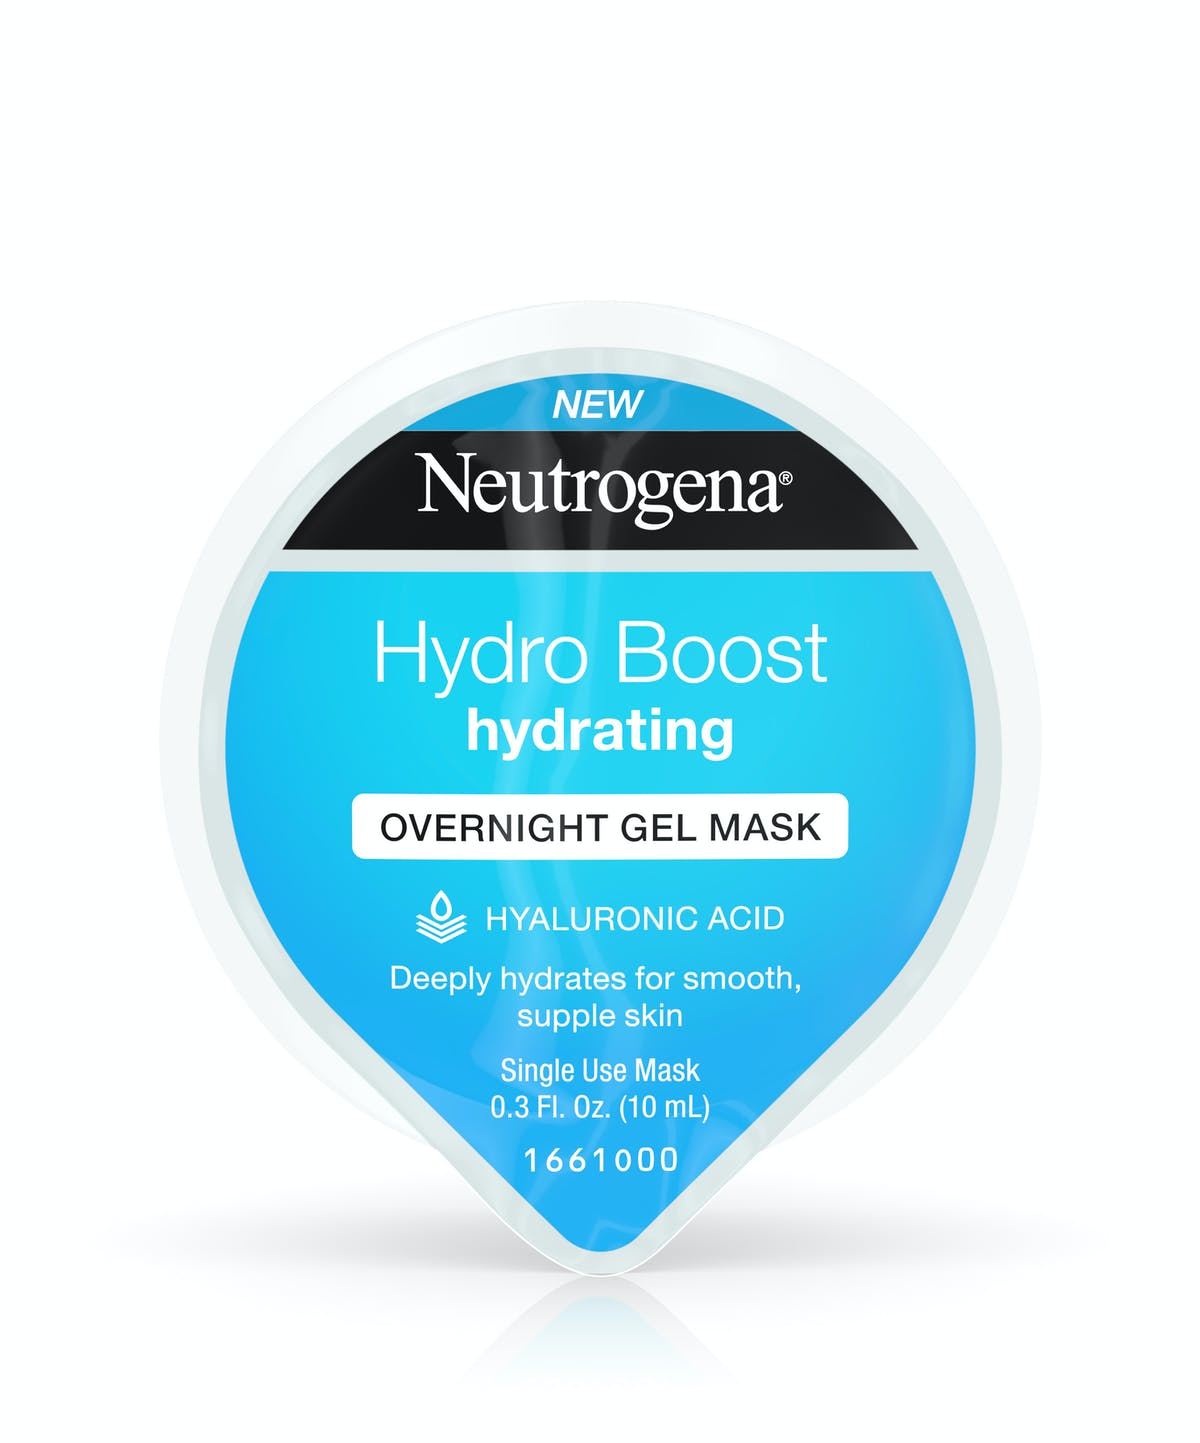 Neutrogena Hydro Boost Overnight Gel Mask